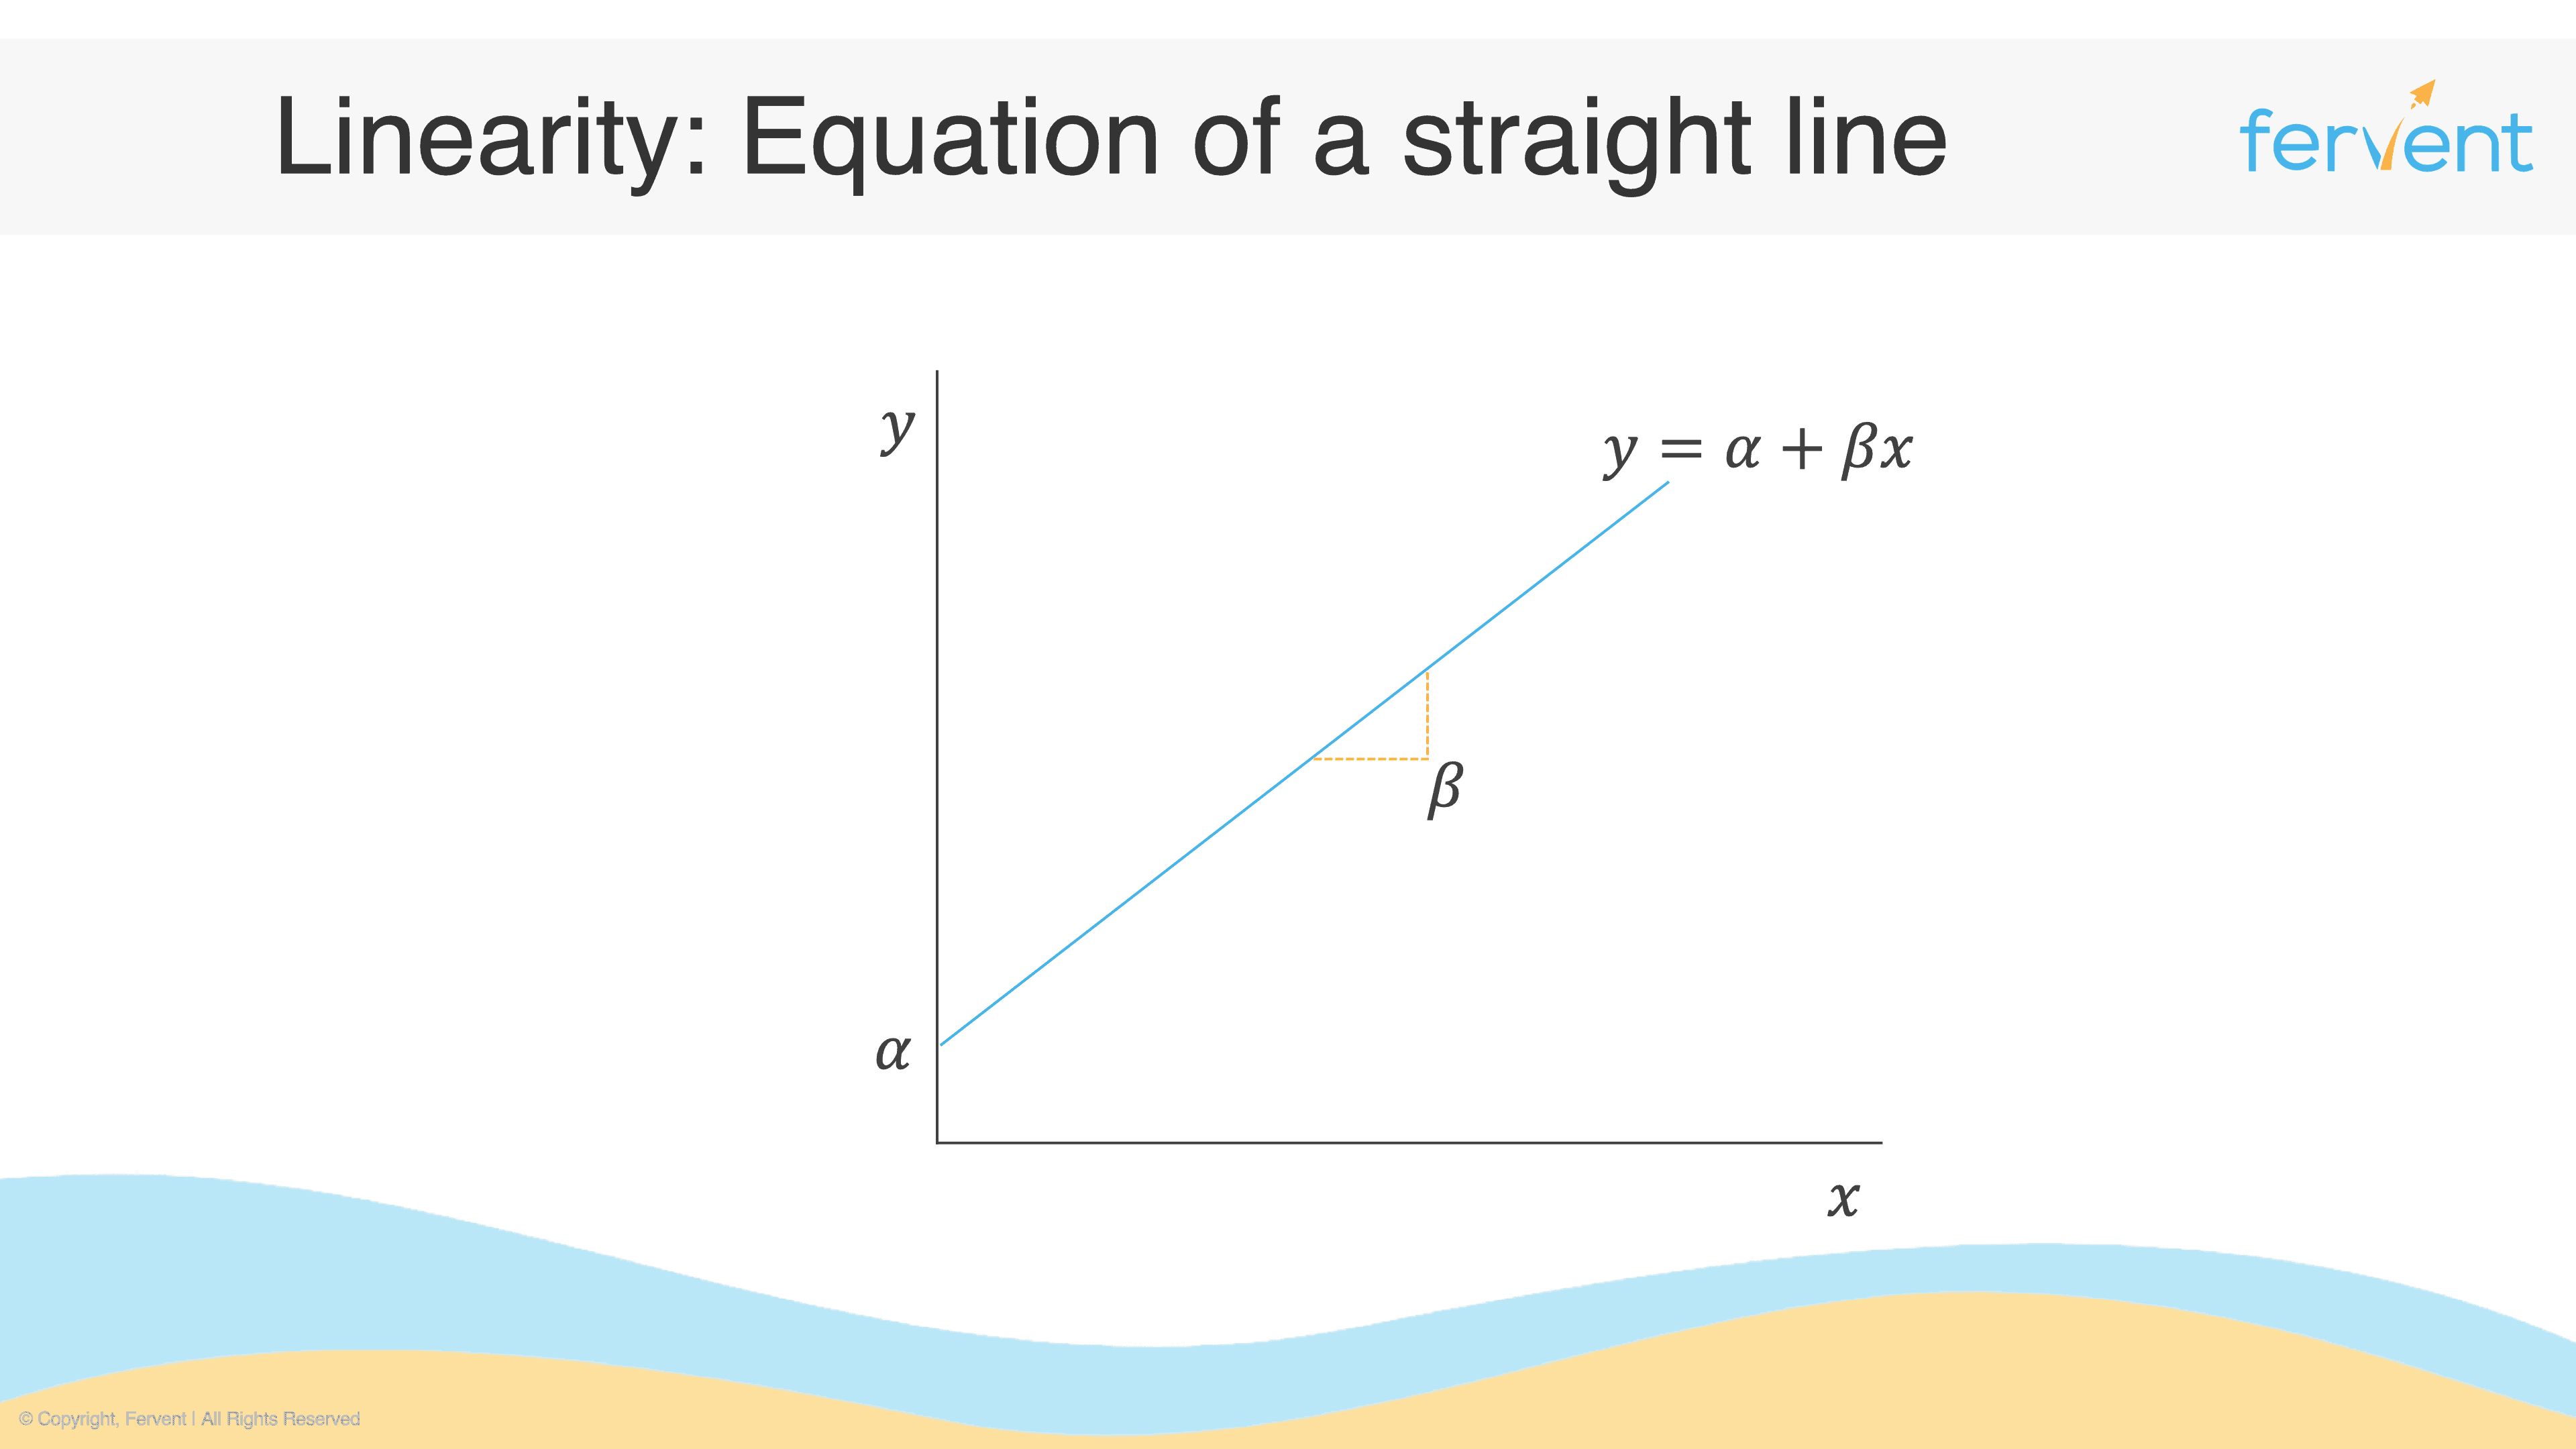 Slide showing equation of a straight line, building up to the capital asset pricing model